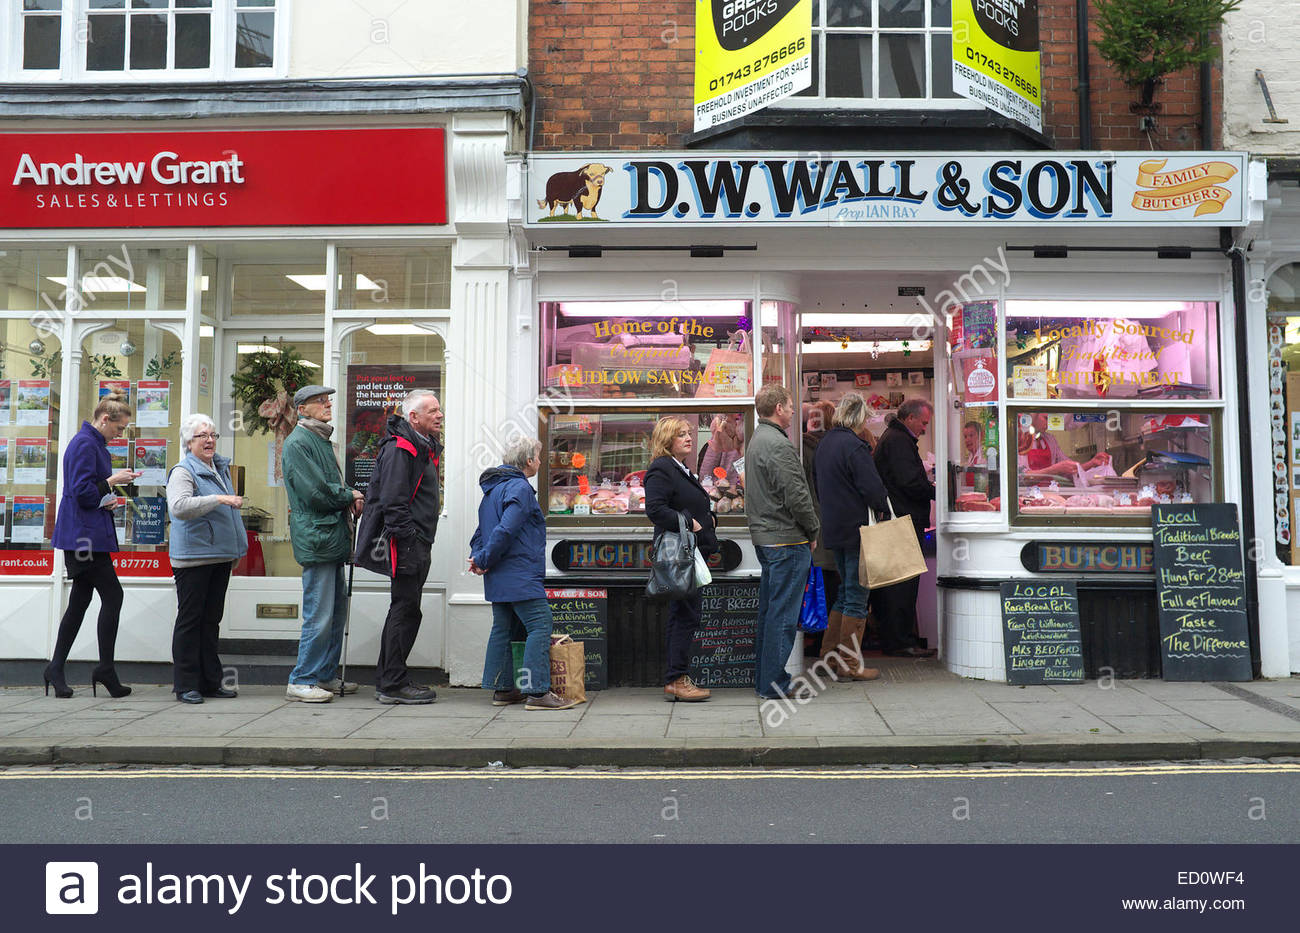 Ludlow, Shropshire, UK, Tuesday 23rd December 2014. Shoppers line up outside the butcher shop of D.W.Wall & Son, Stock Photo